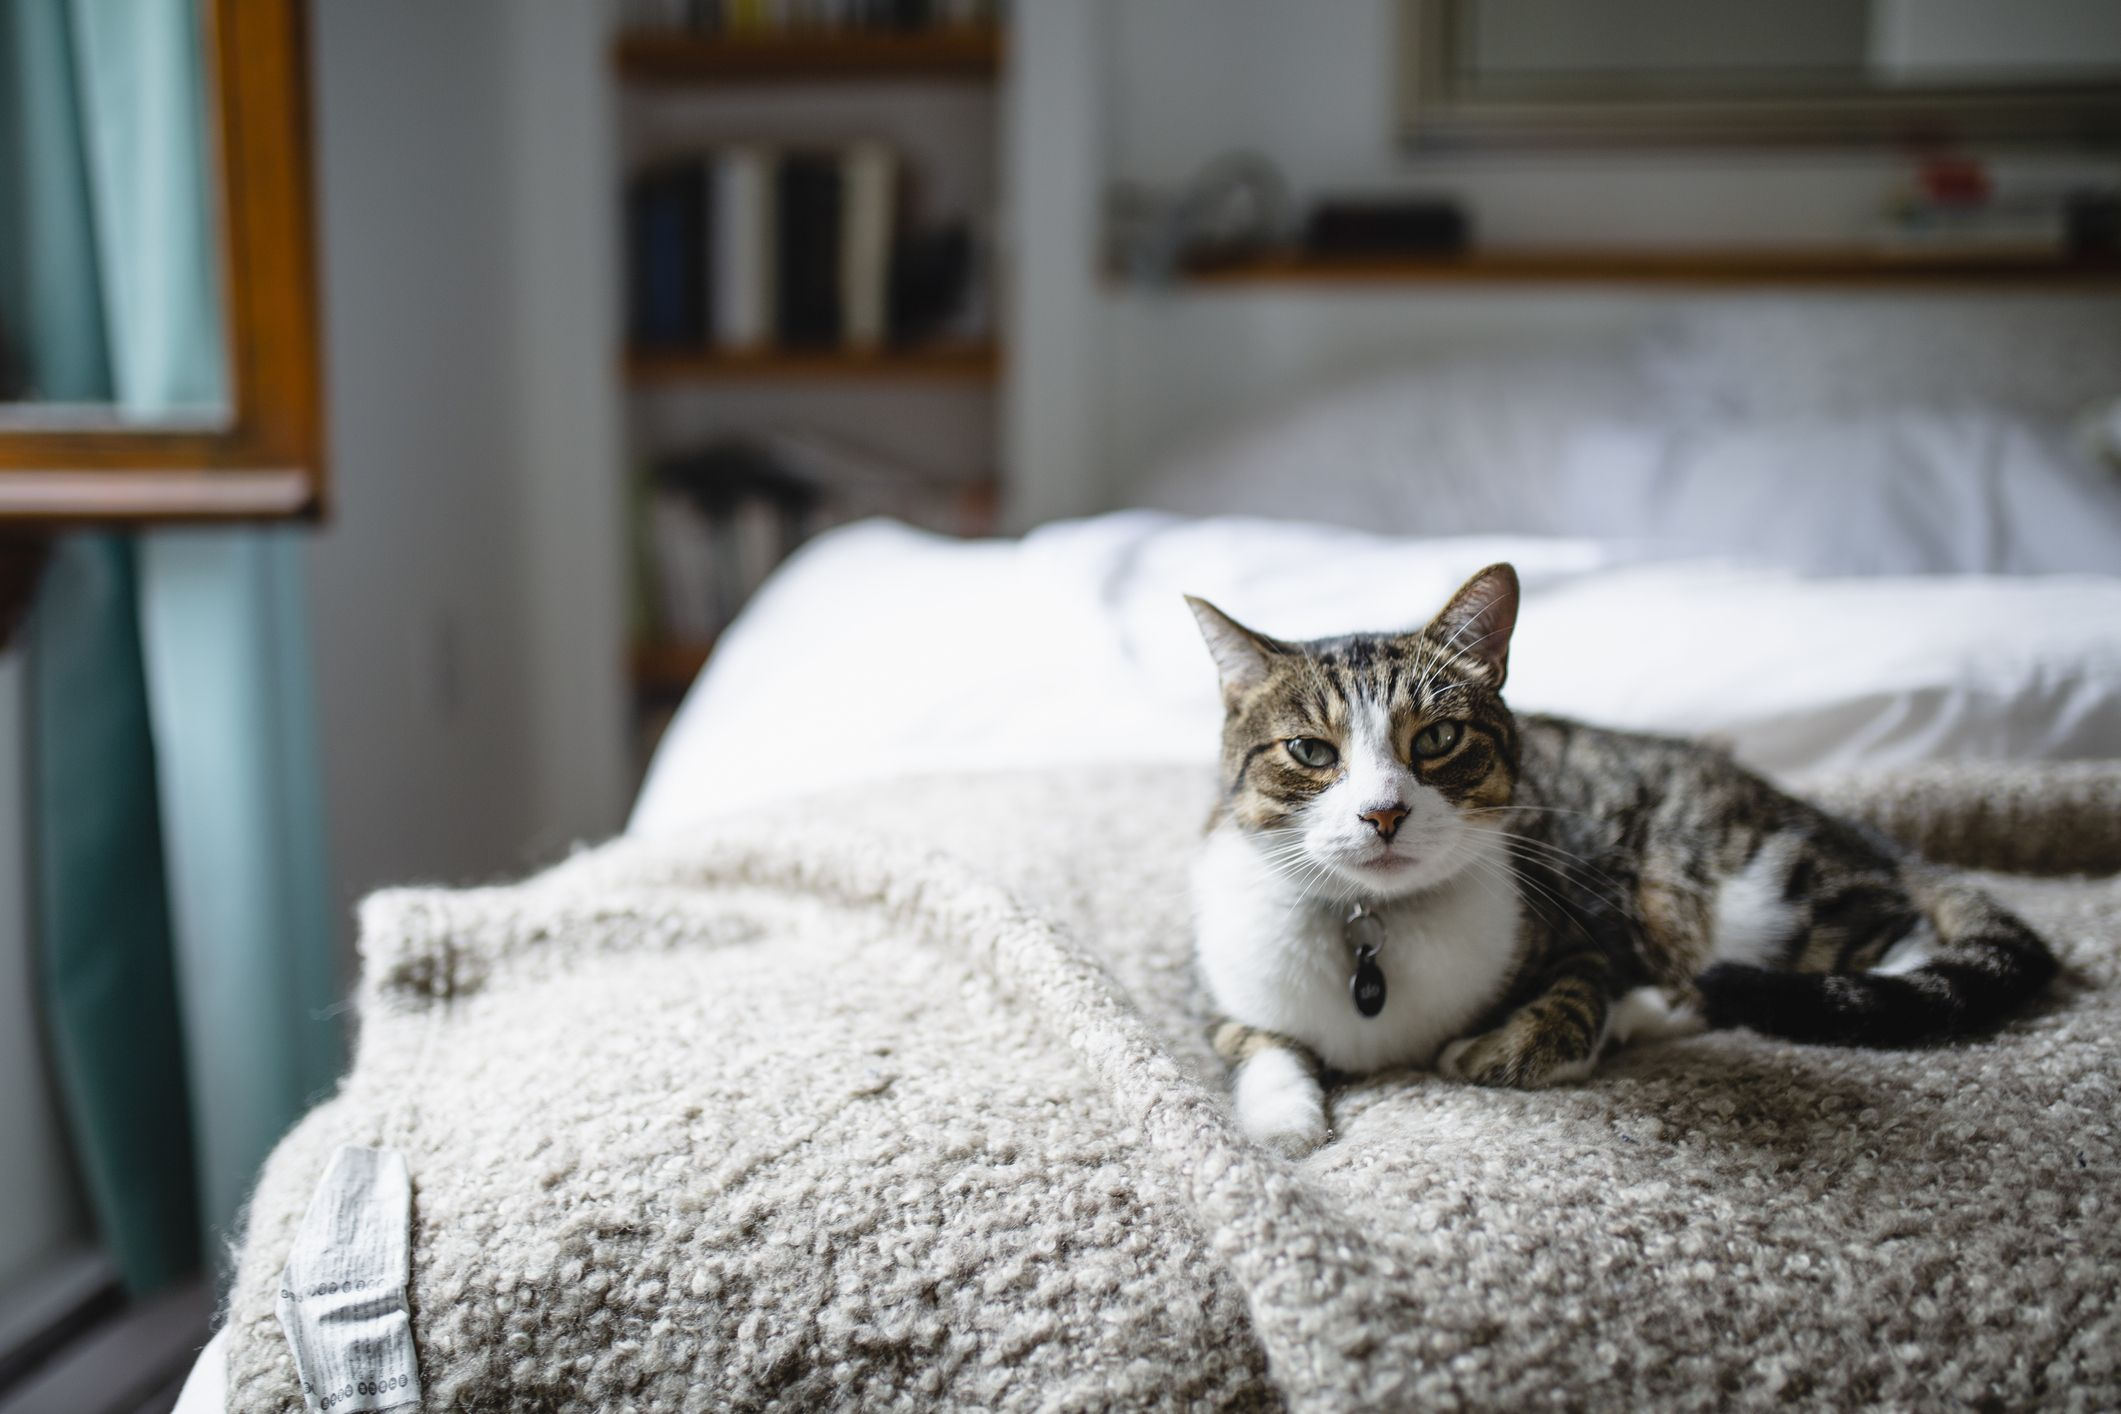 A Study Conducted Over 10 Years Says Letting Your Cat Sleep in Your Bed May Be Good for Your Health